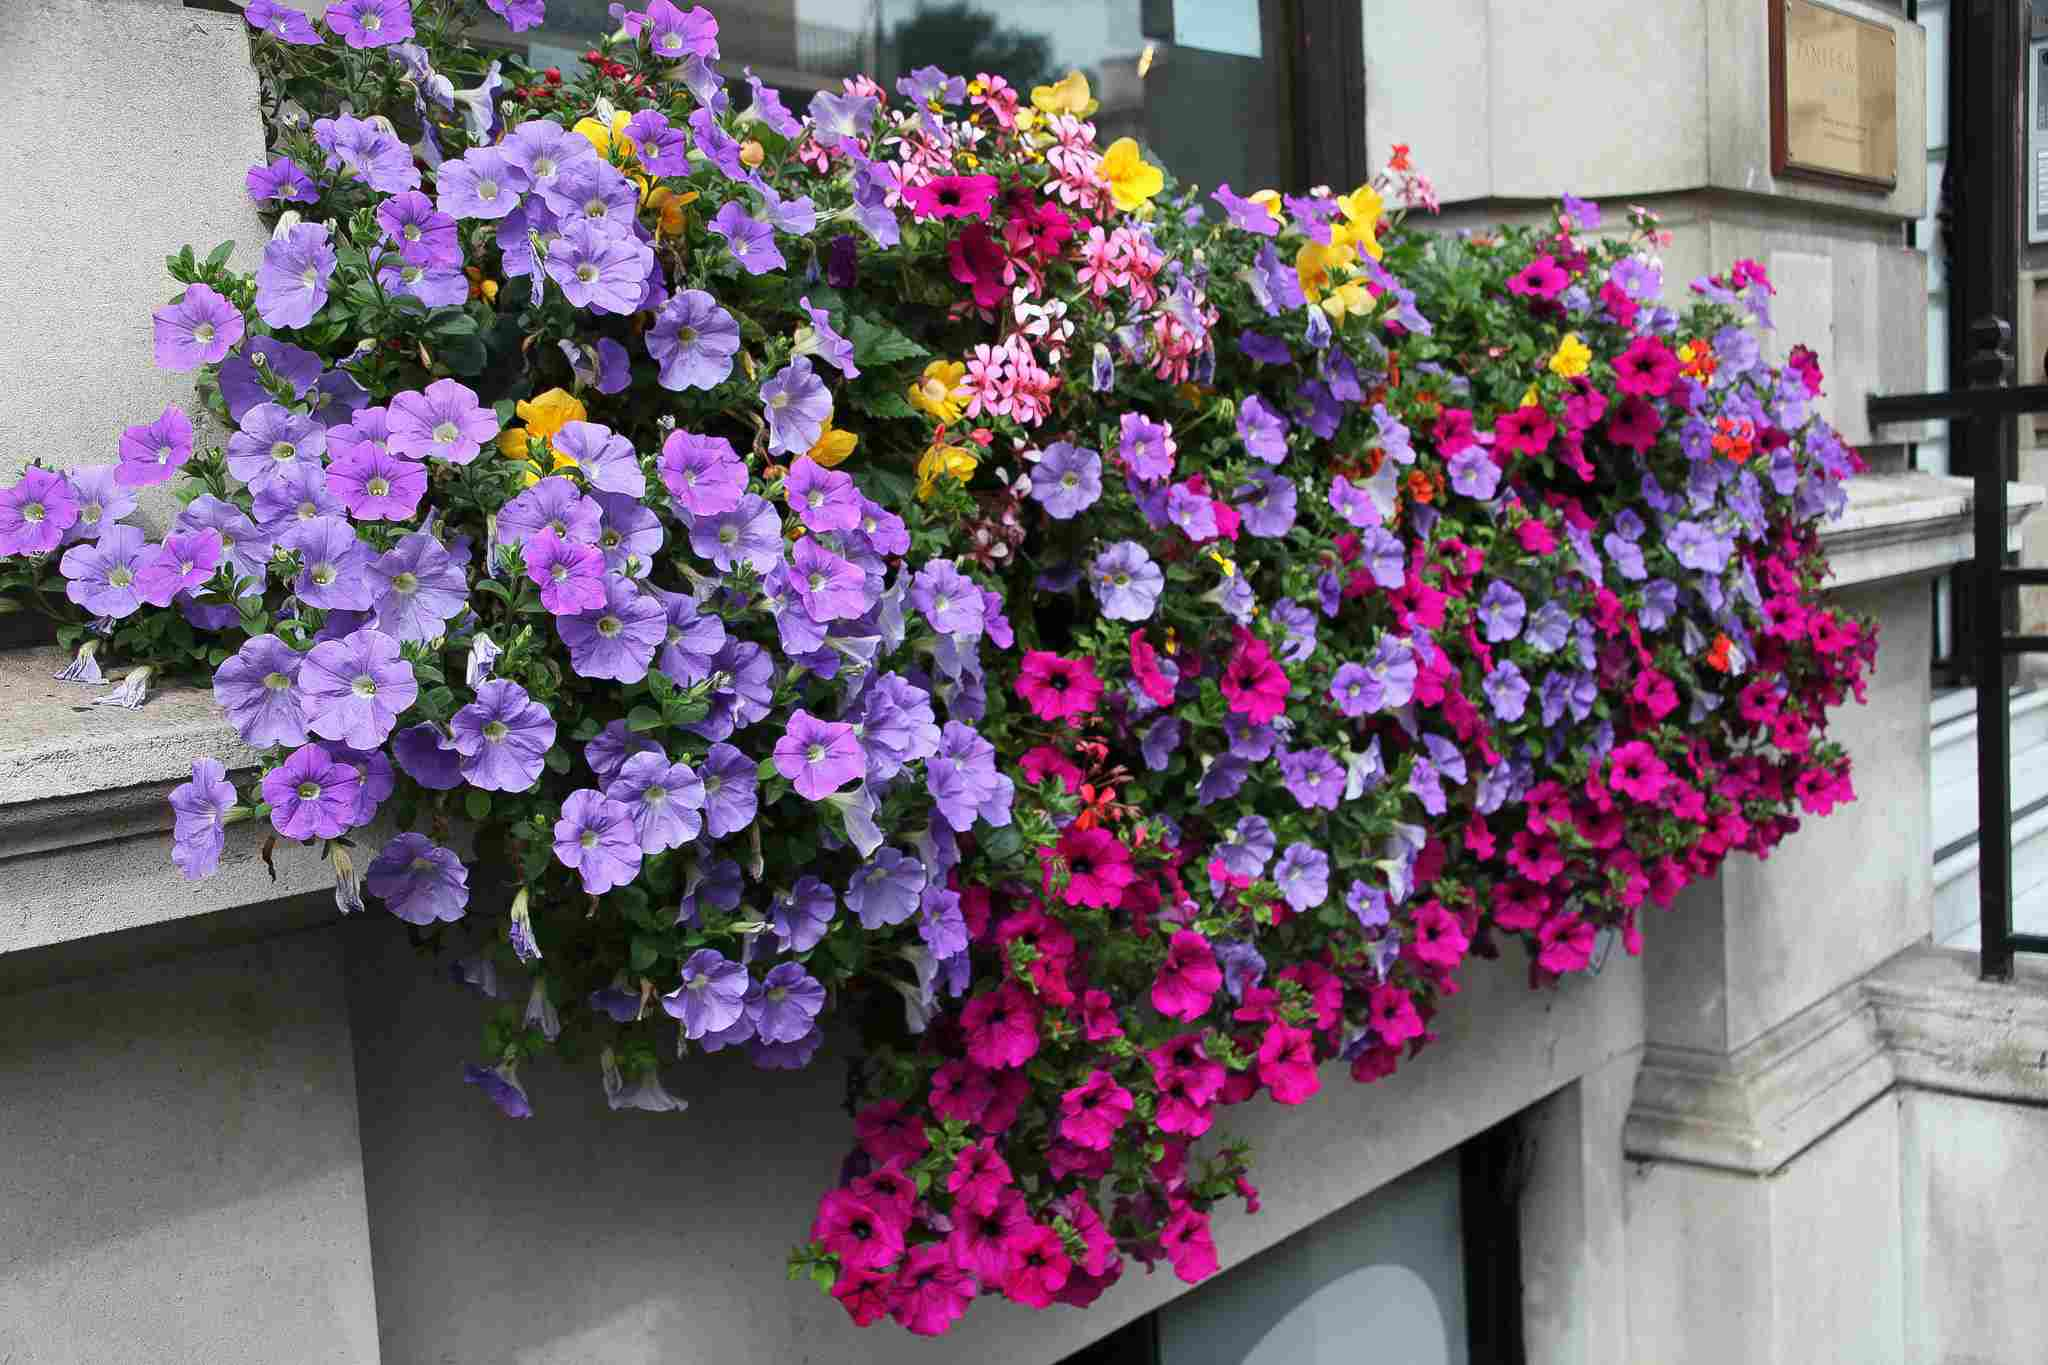 spring window box with purple, pink, and yellow flowers